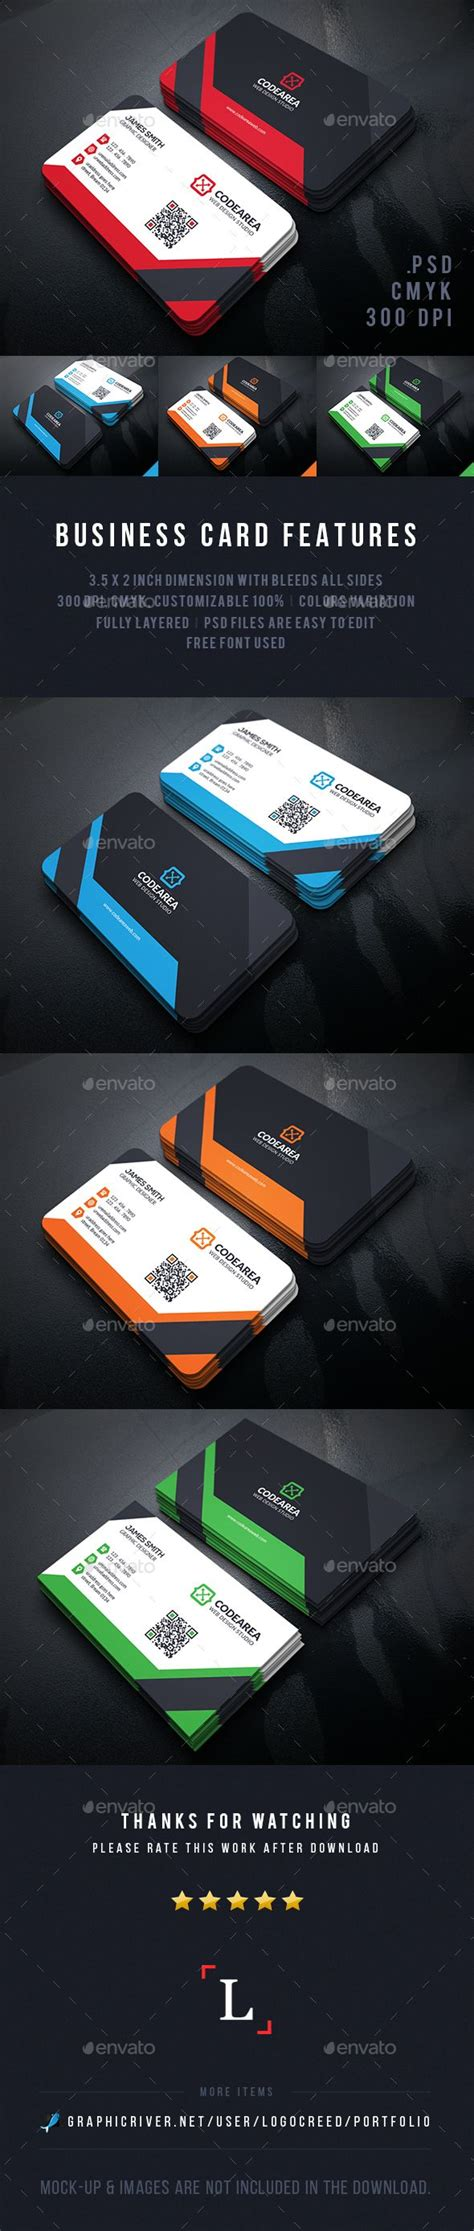 professional business cards  images business cards